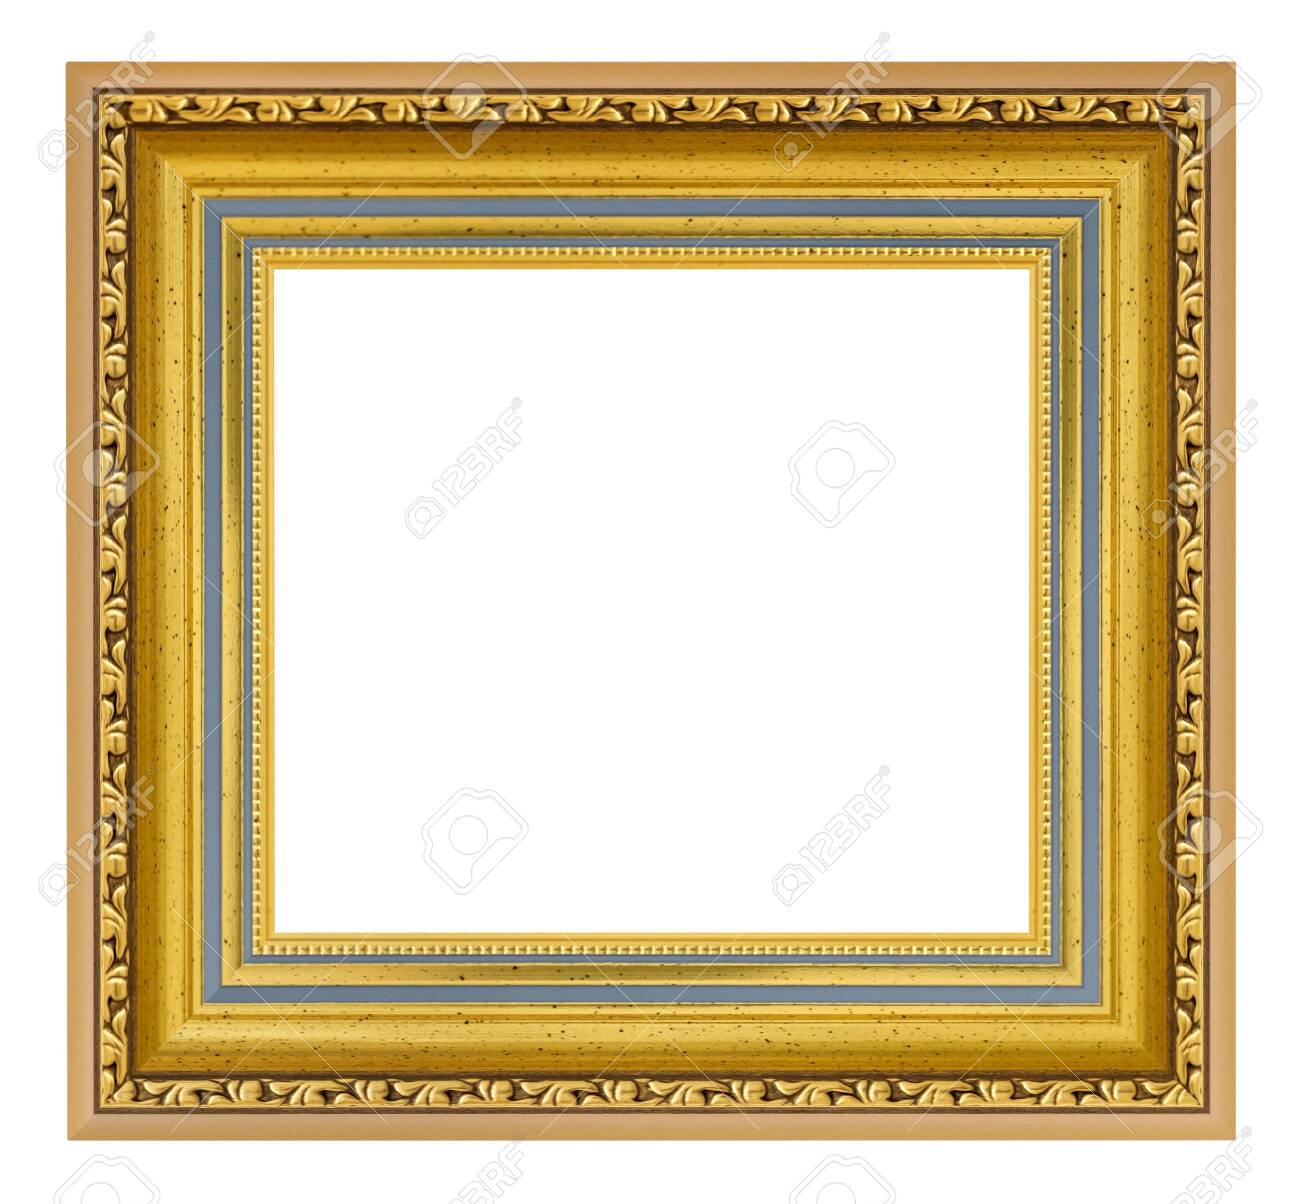 Golden vintage square frame on a white background, isolated - 151399538